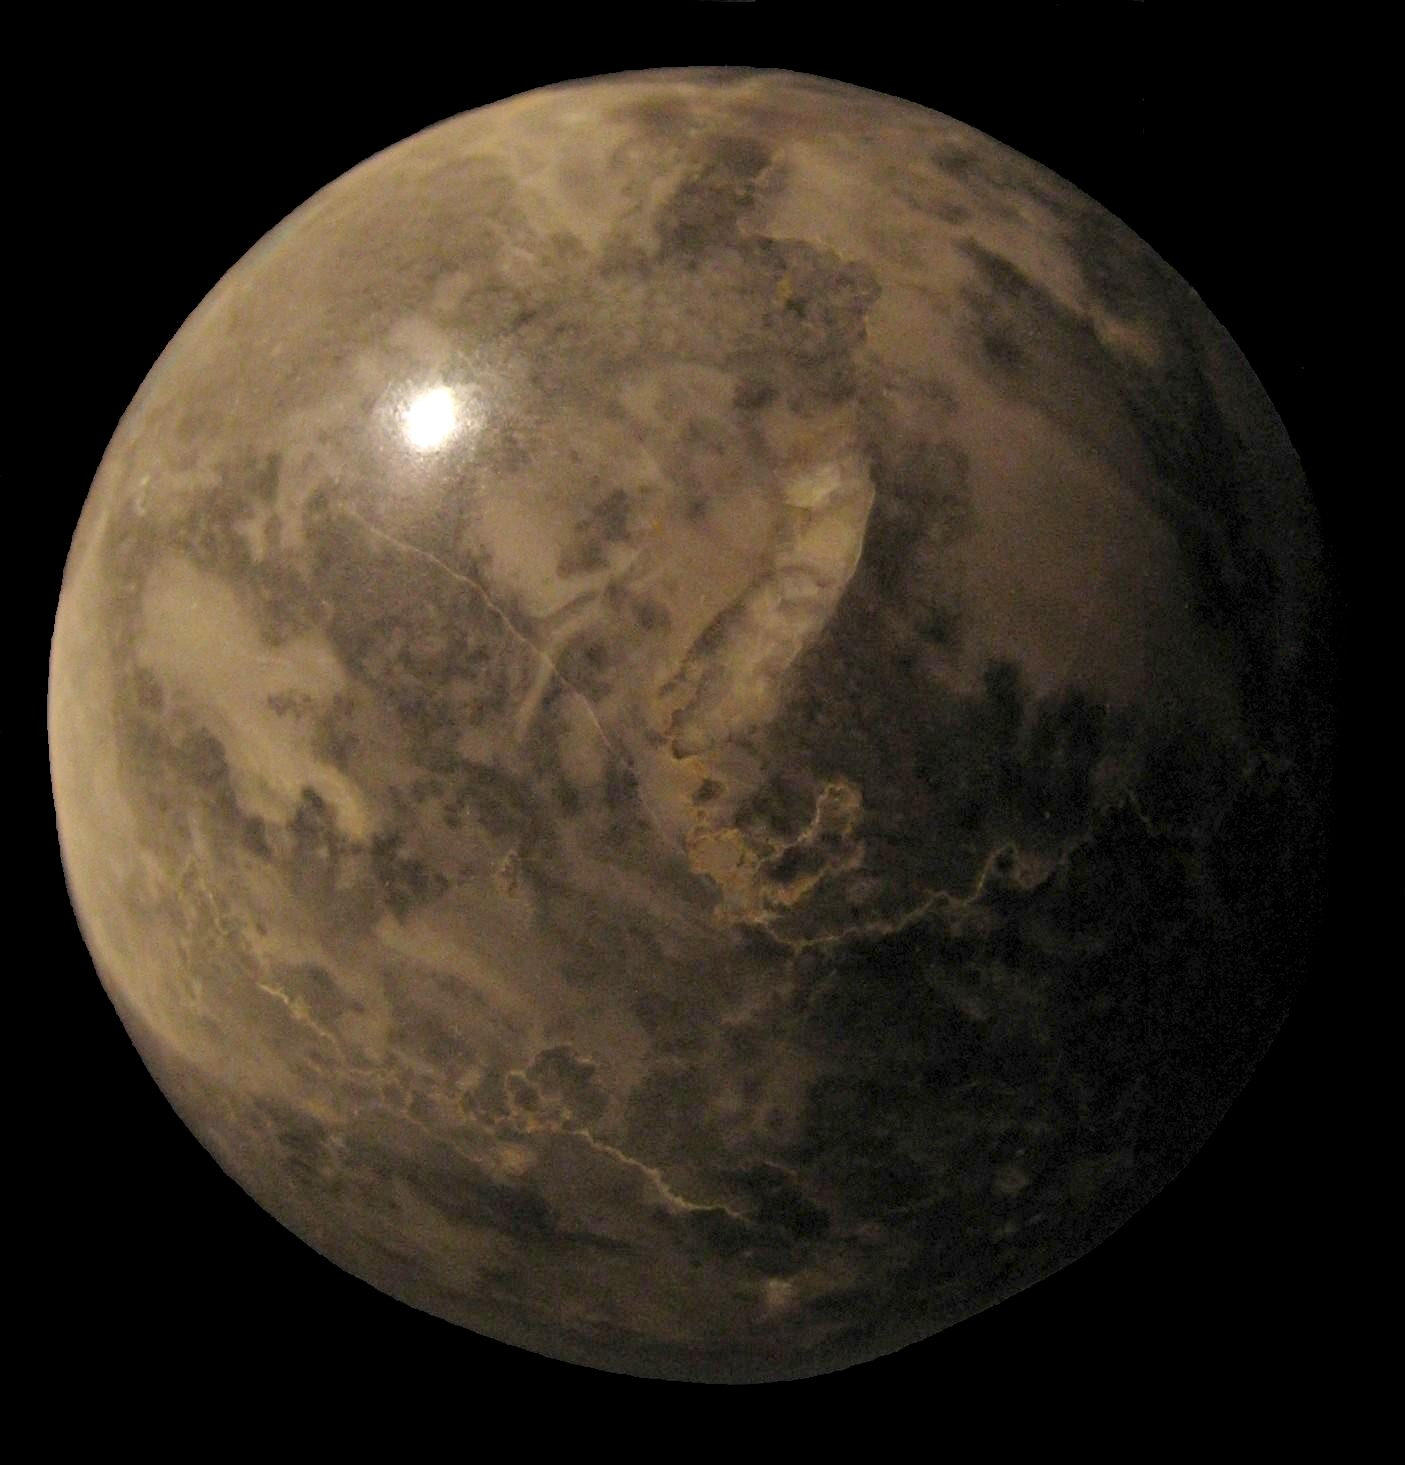 Different Types of Earth-like Planets - Pics about space